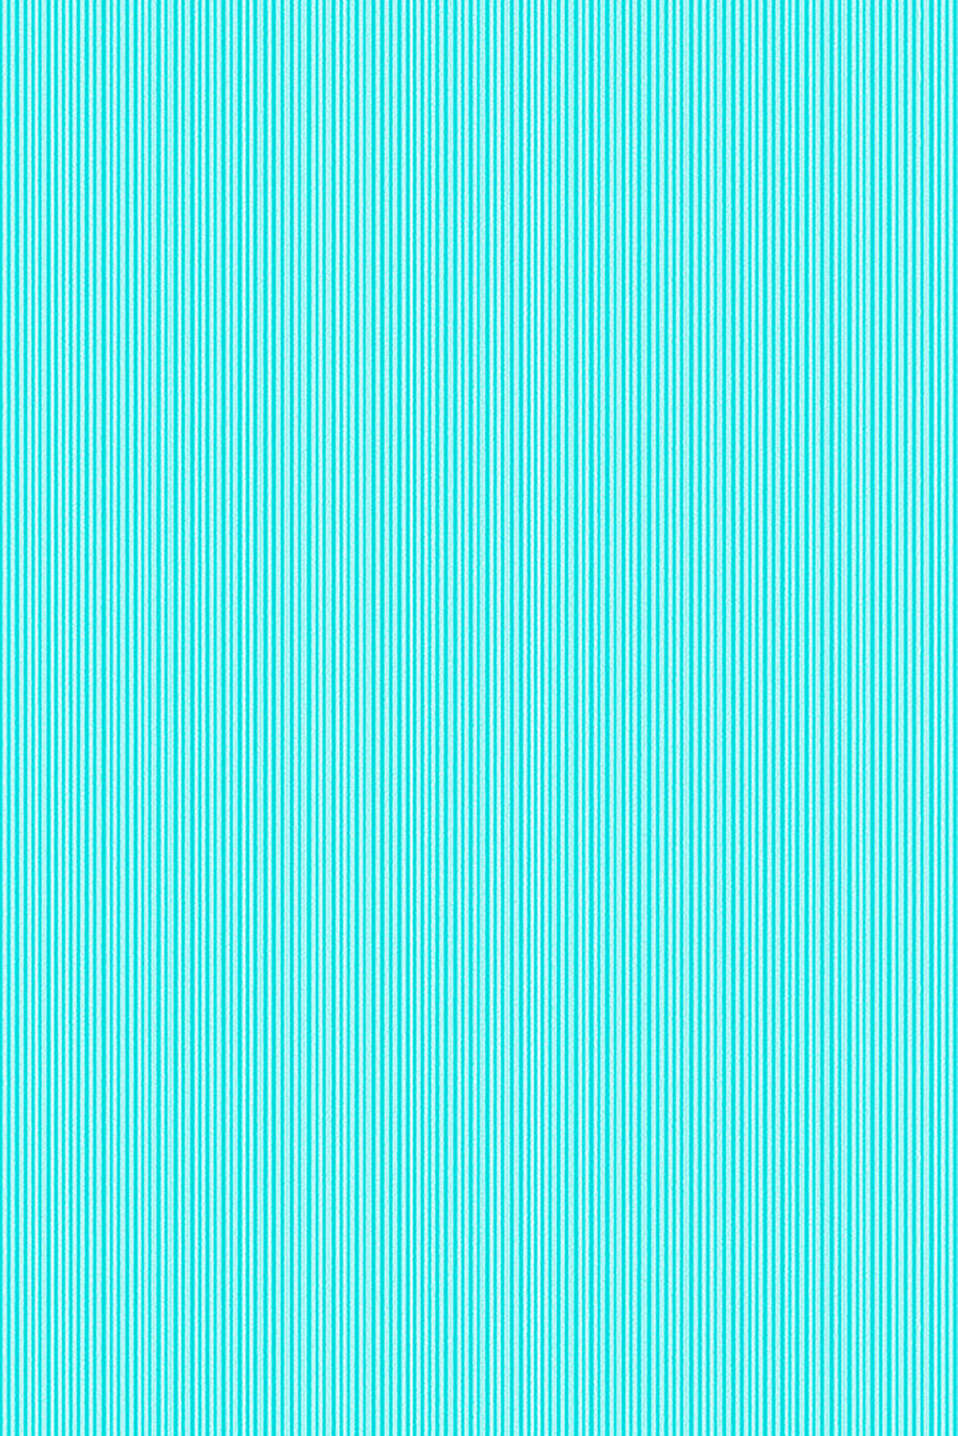 Esprit - Wallpaper with fine vertical stripes